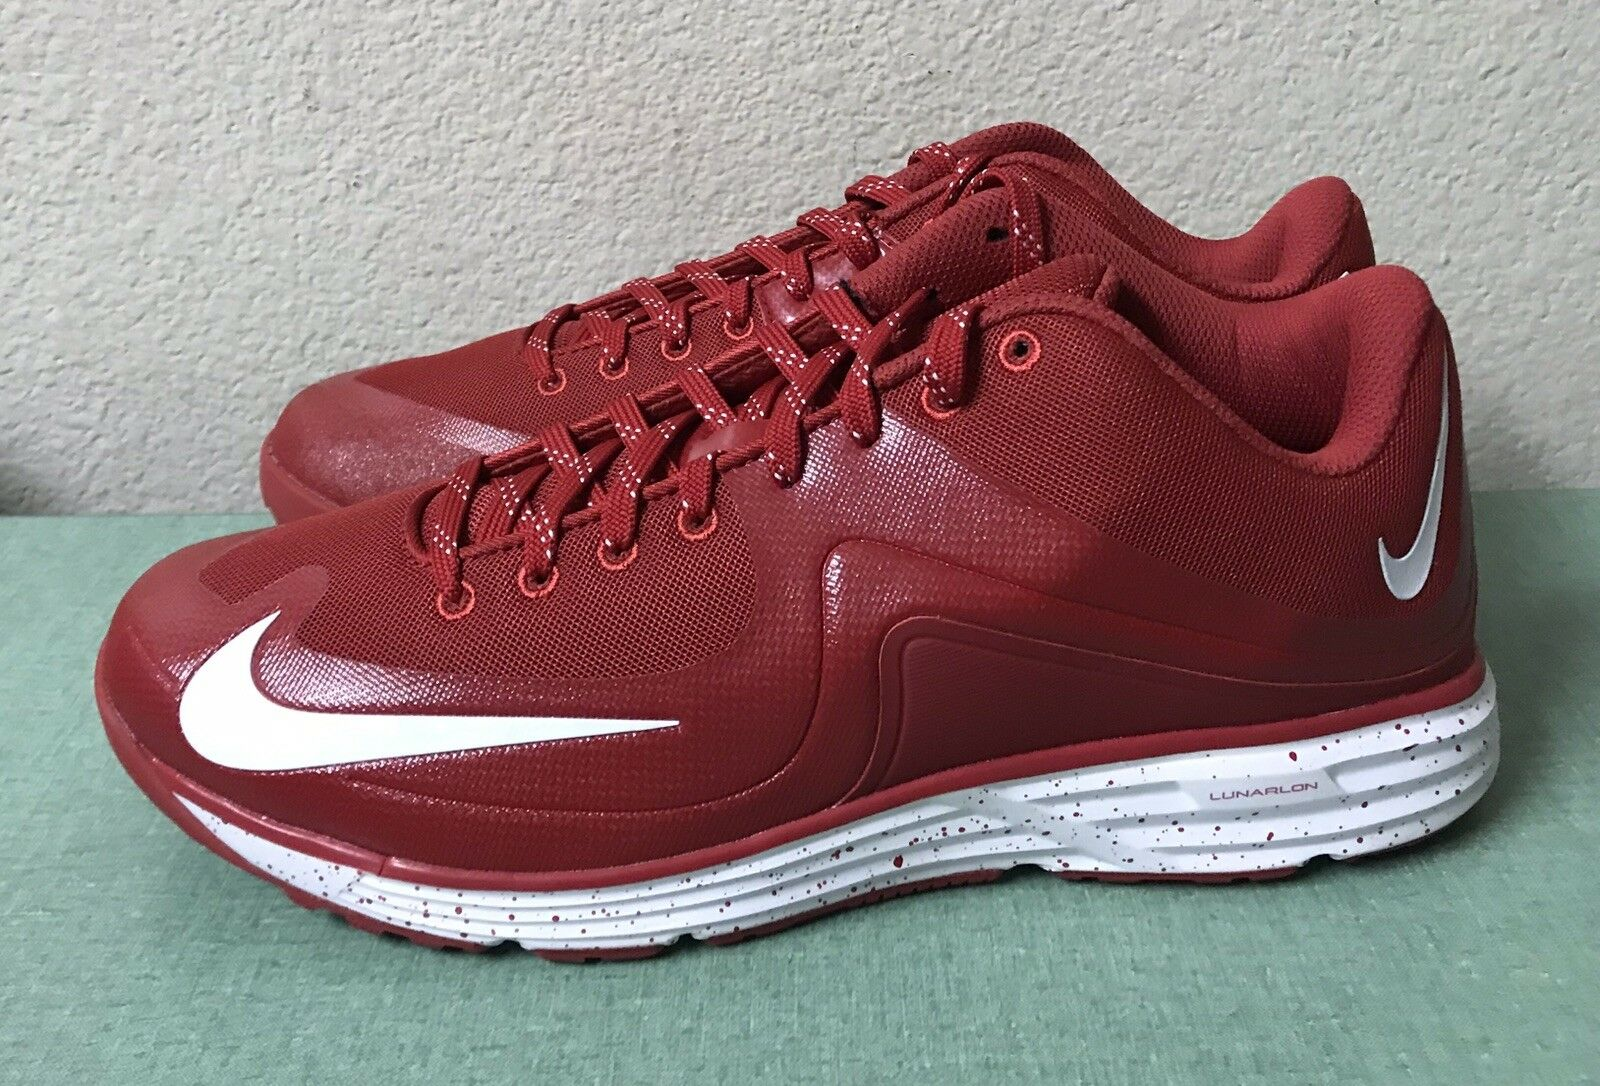 on sale e190b 161ec Nike Nike Nike Lunar MVP Pregame 2 Turf Red White Baseball Trainers Mens Sz  12 NEW 5ae653